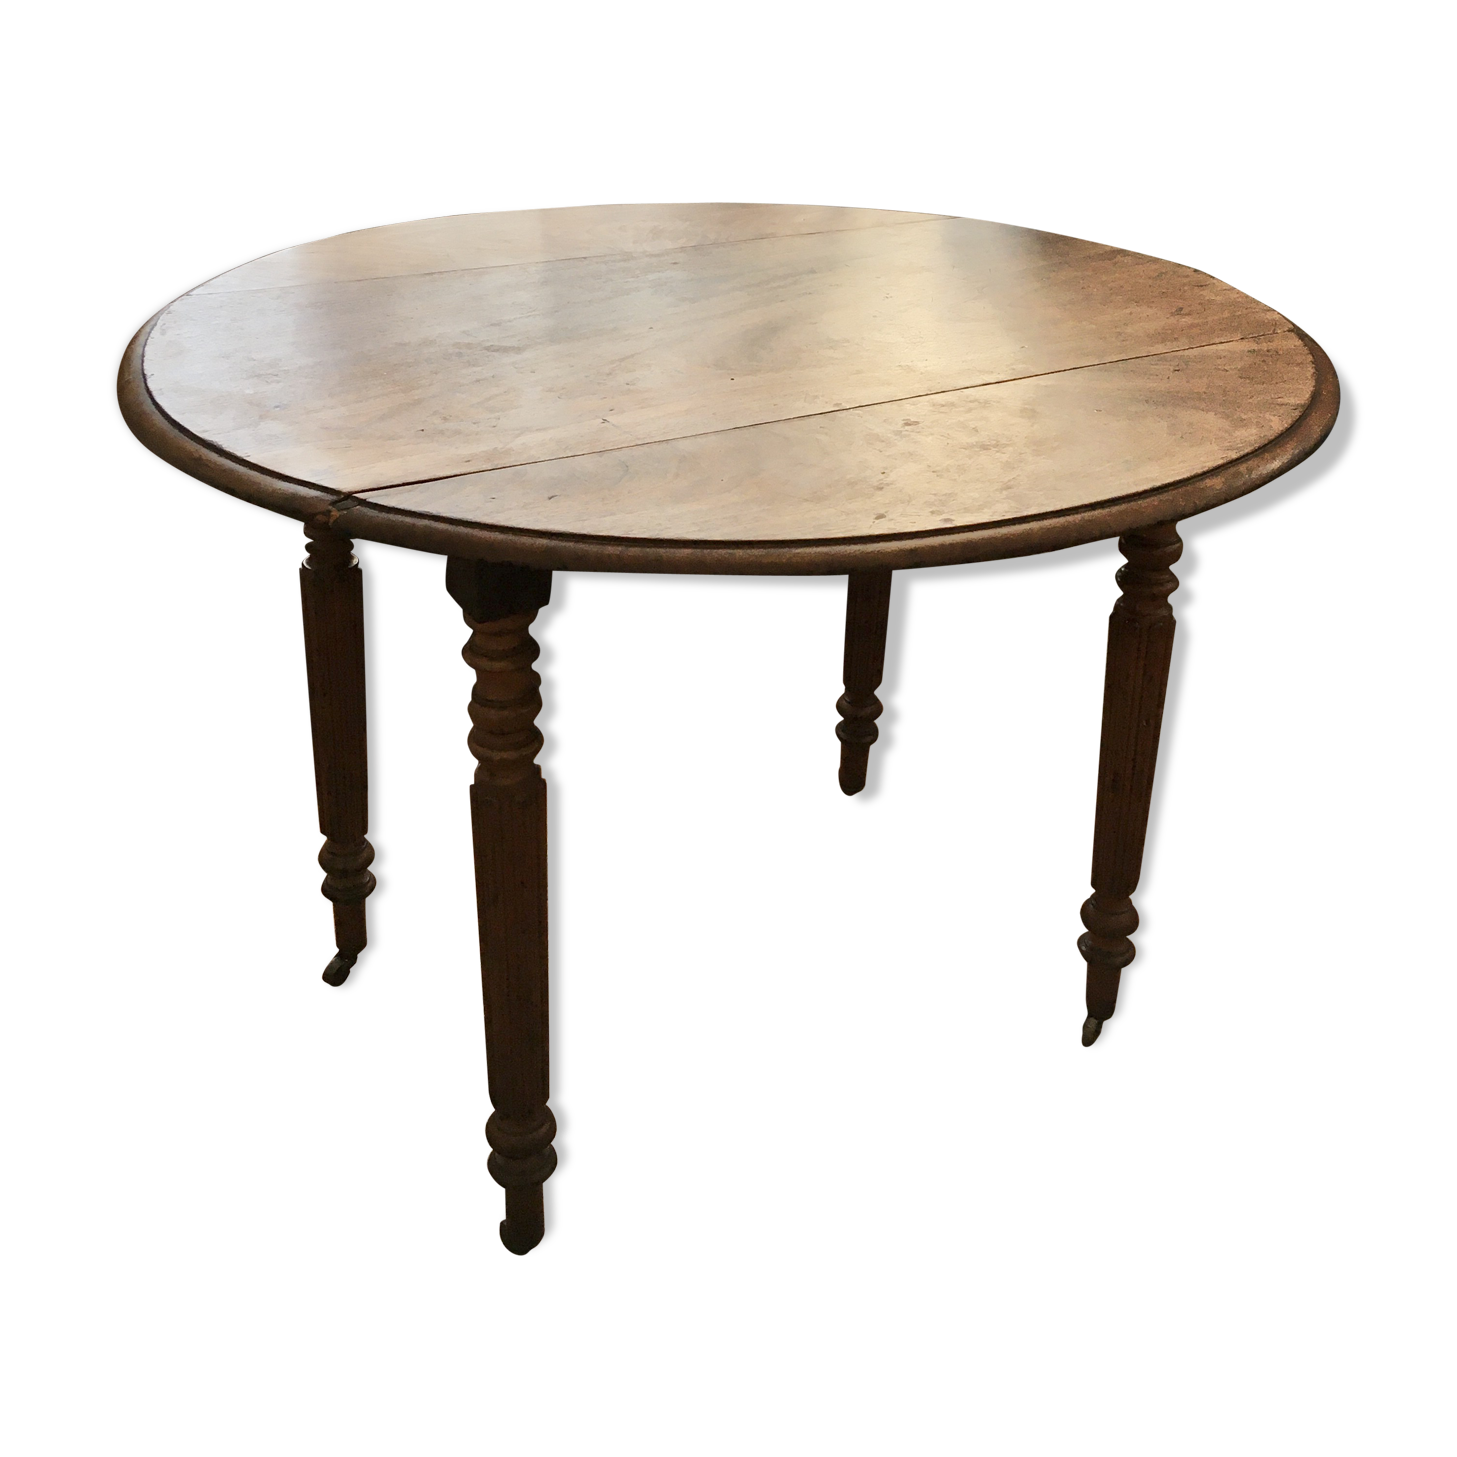 Salle A Manger Louis Philippe Relookee: Table Ronde Style Louis Philippe